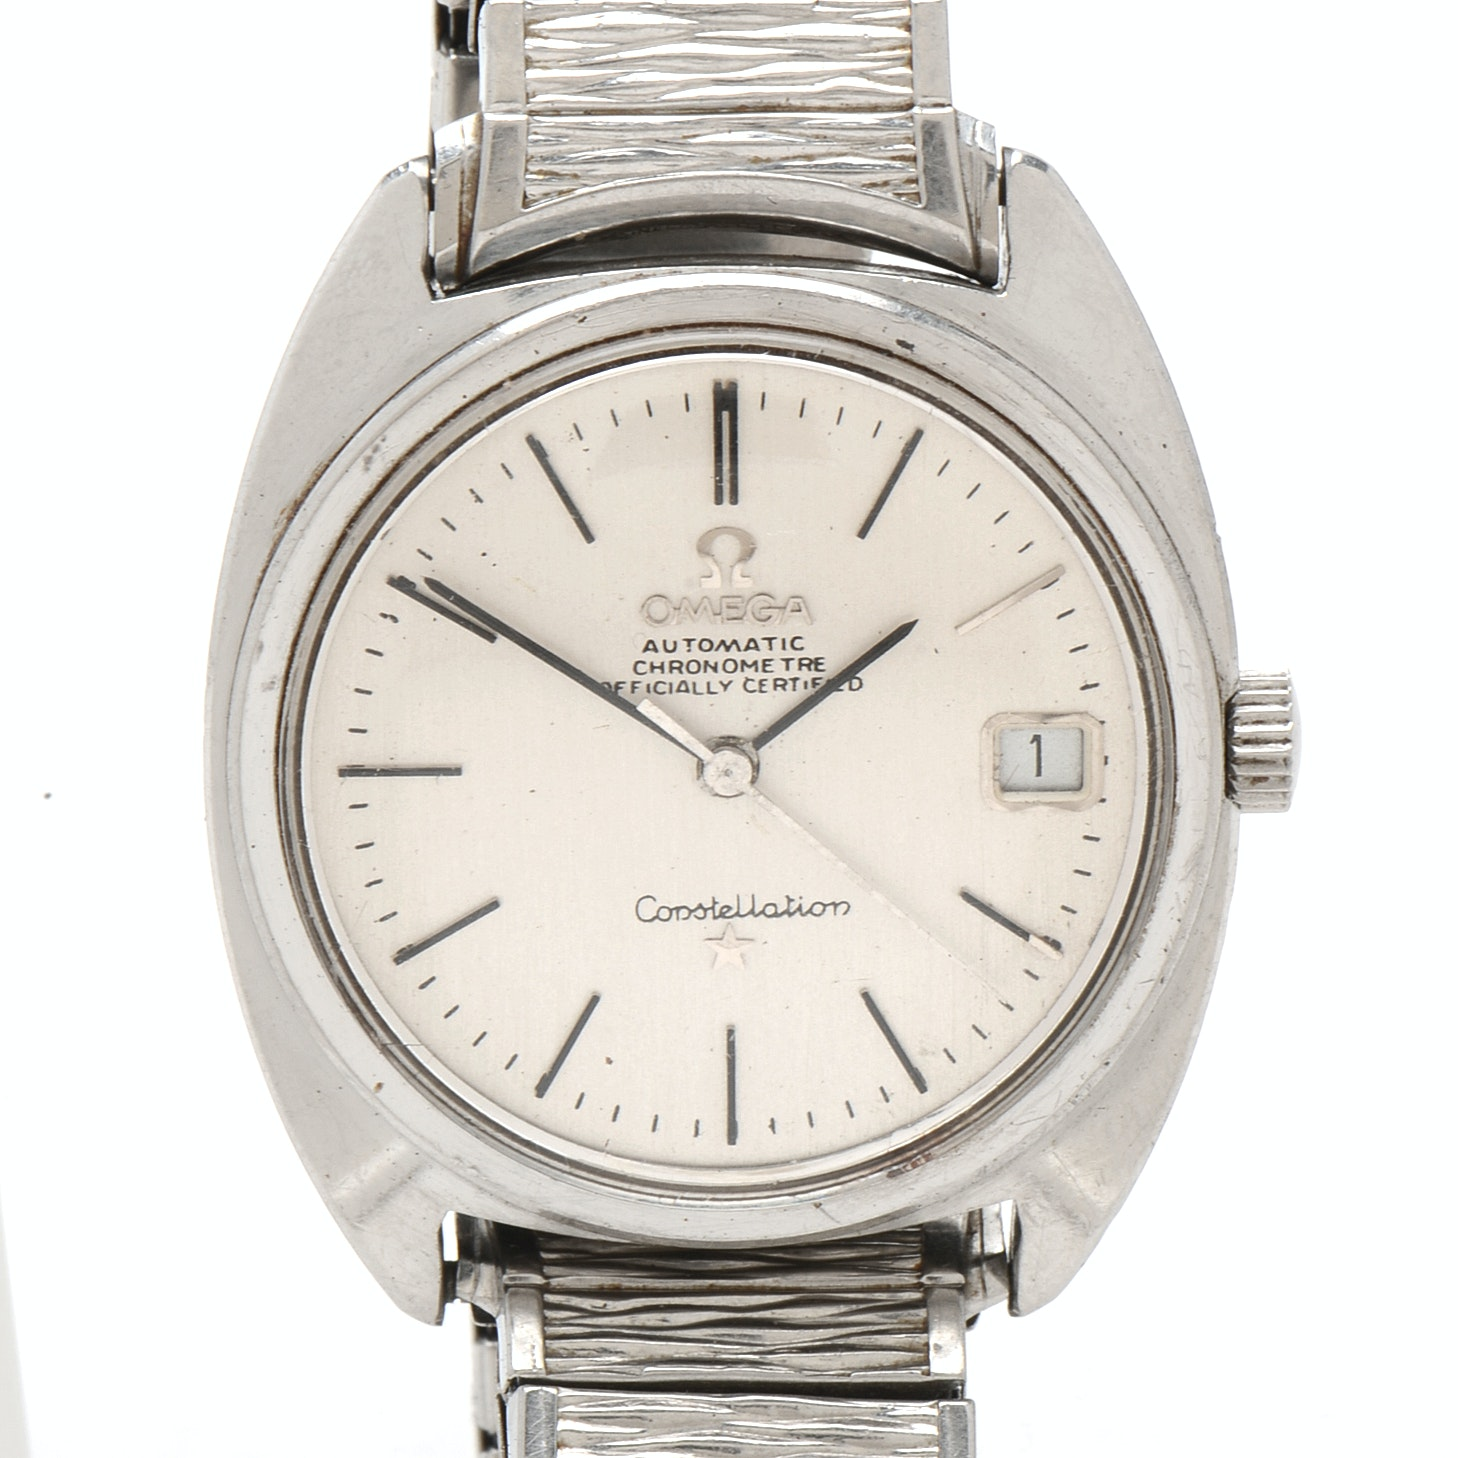 Vintage Omega Constellation Automatic Stainless Steel Wristwatch